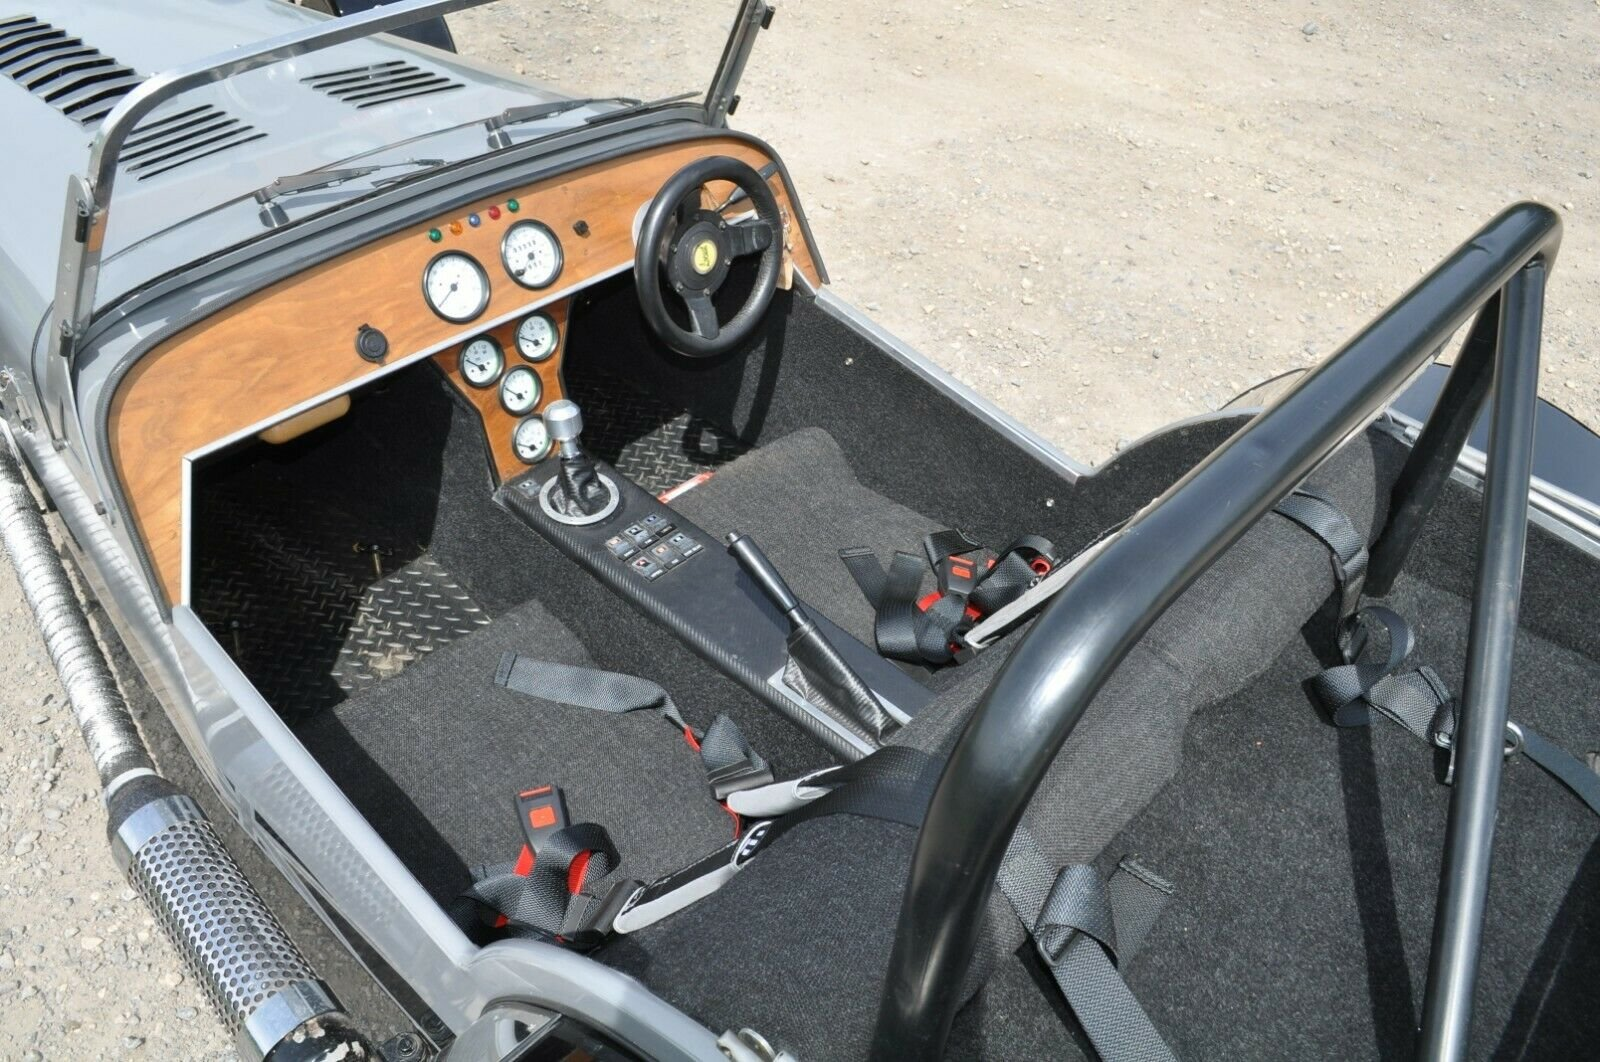 1978 LOCUST SEVEN 7 KIT CAR 1600 CROSSFLOW VGC CONDITION  SOLD (picture 5 of 5)